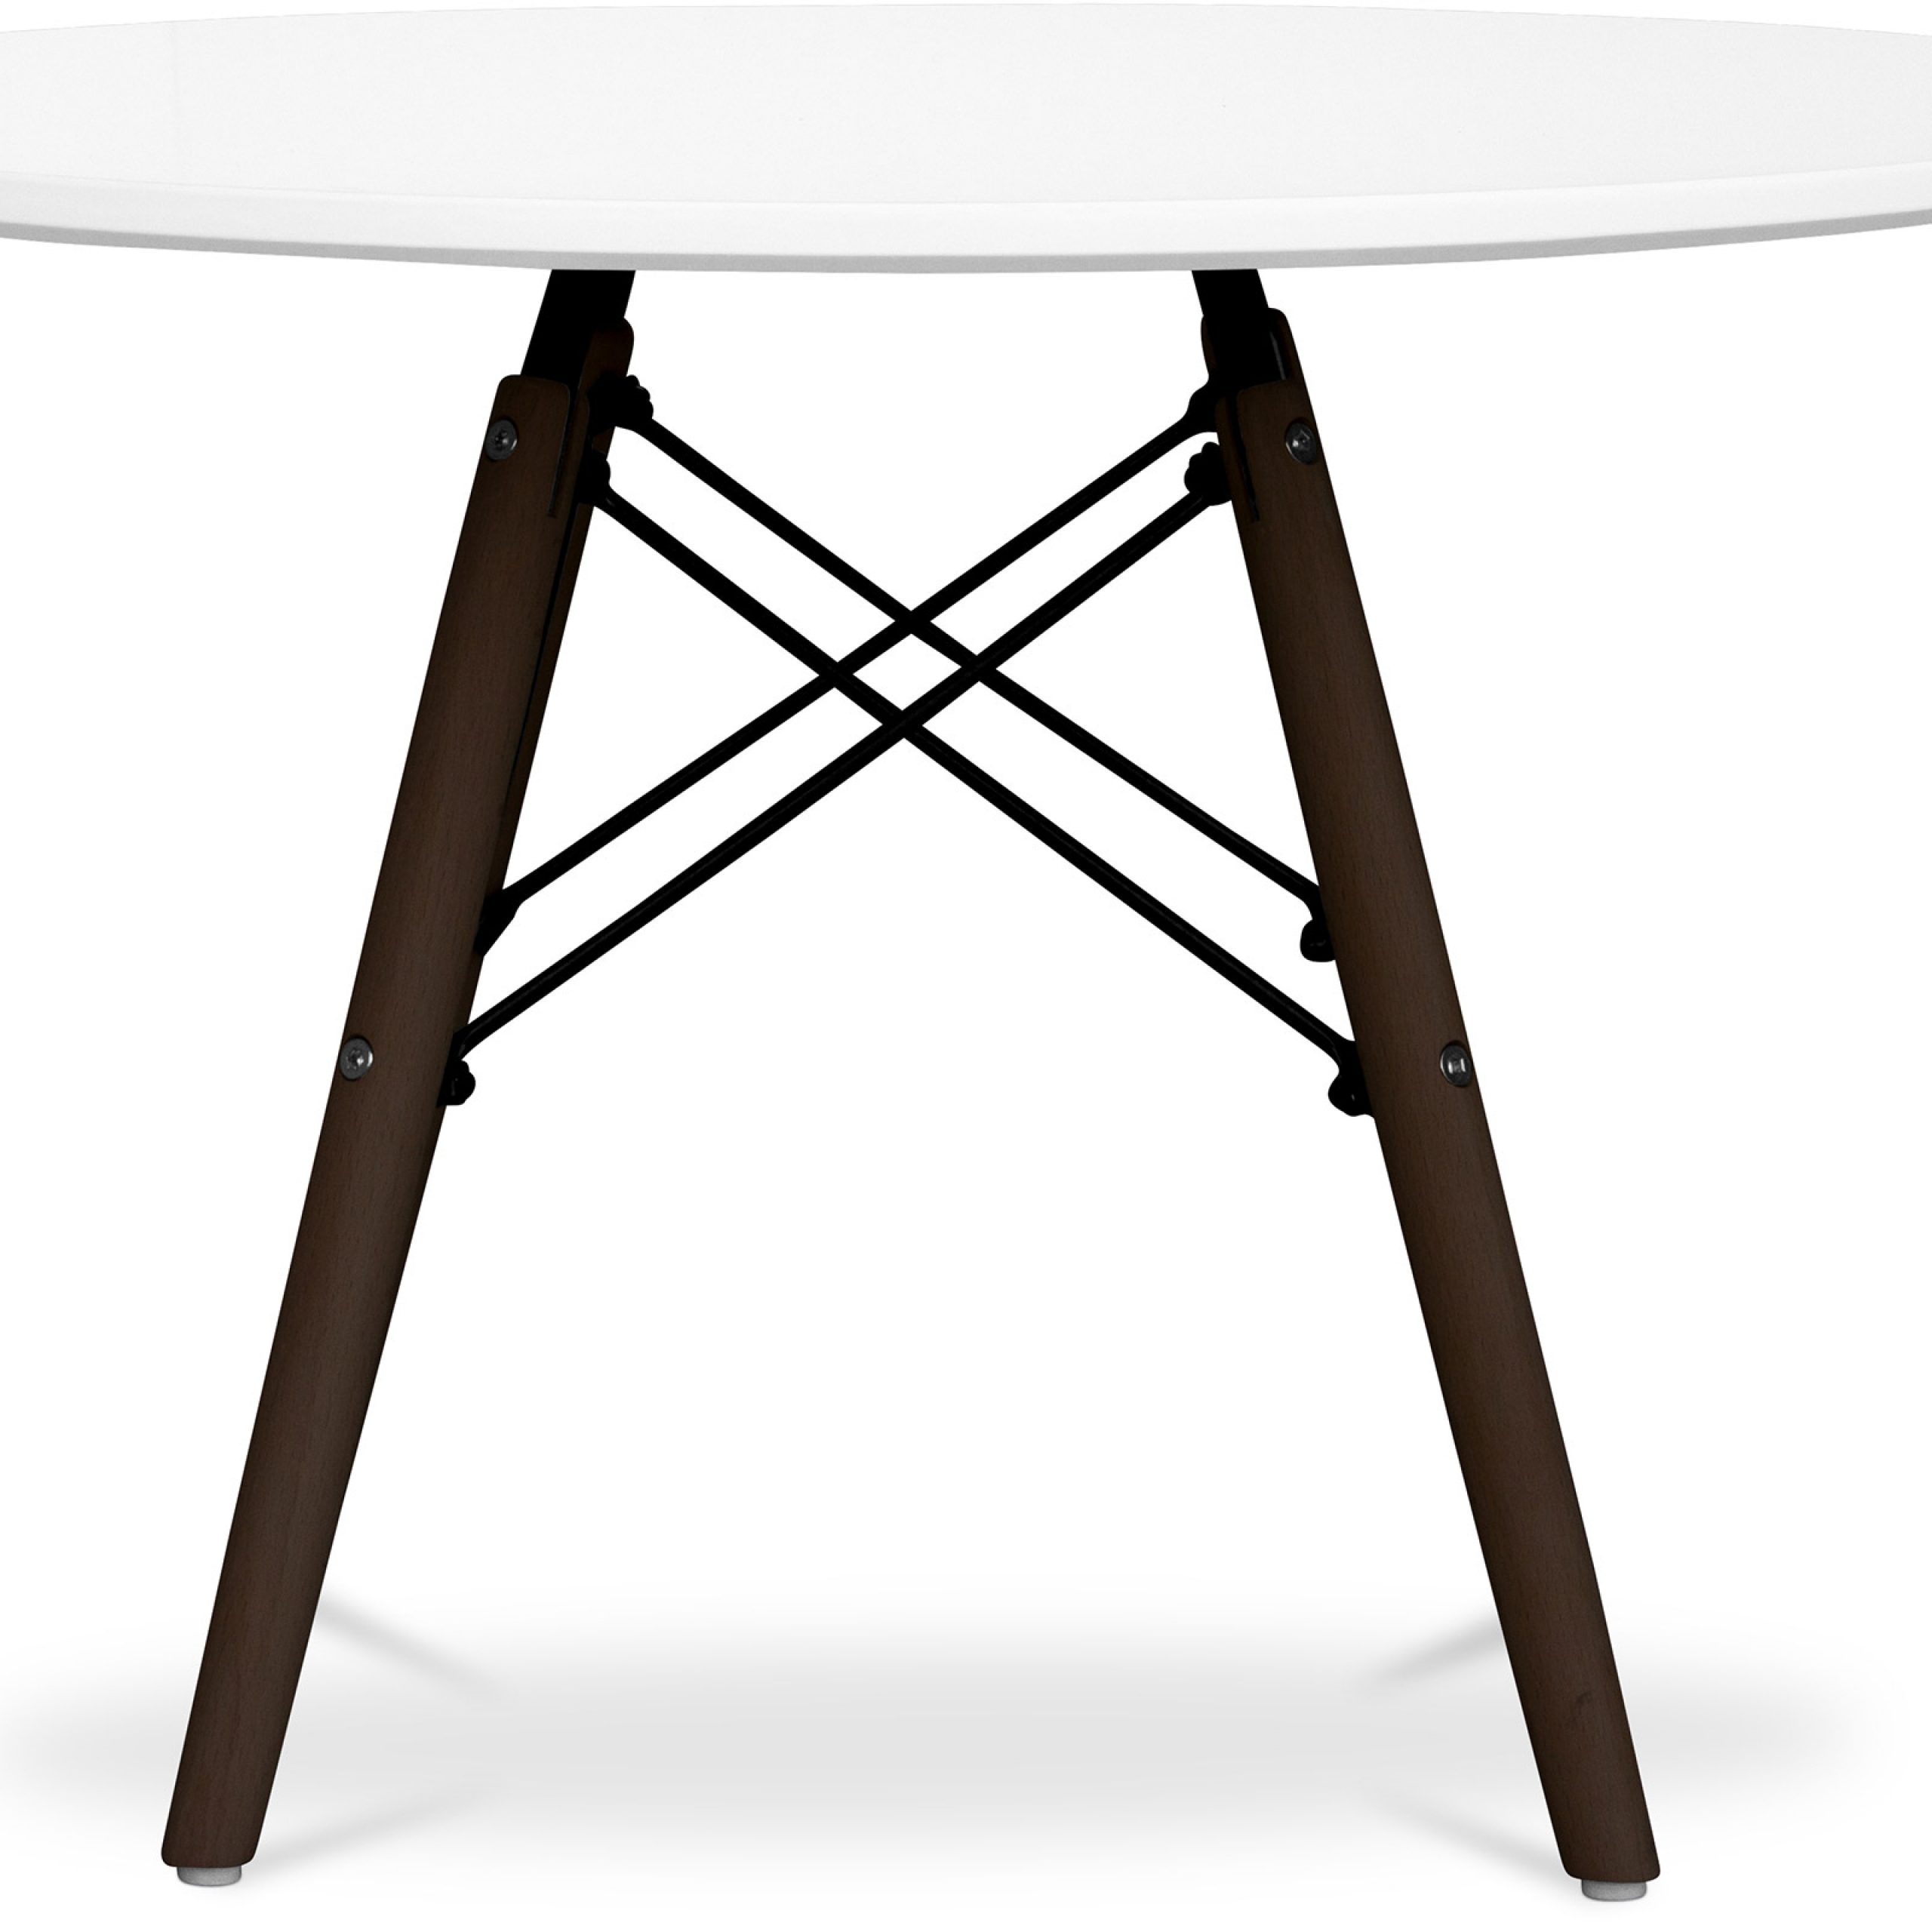 Famous Eames Style Dining Tables With Wooden Legs Intended For Dark Legs Dsw Kids Table Charles Eames – Style – Wood (View 11 of 16)